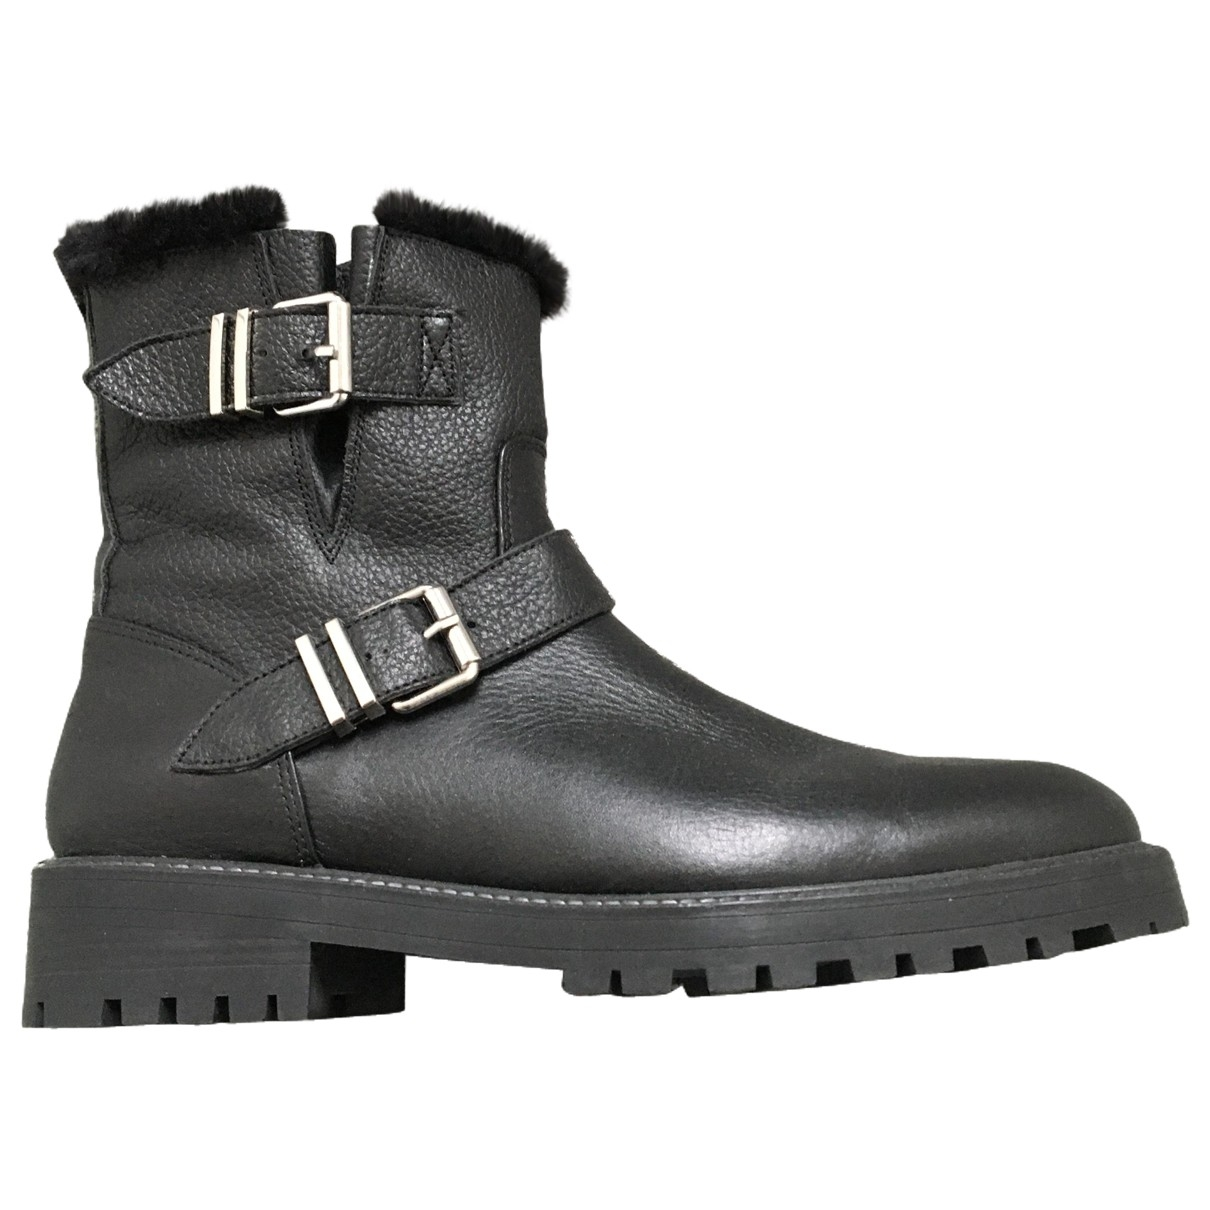 Zara \N Black Leather Ankle boots for Women 41 EU